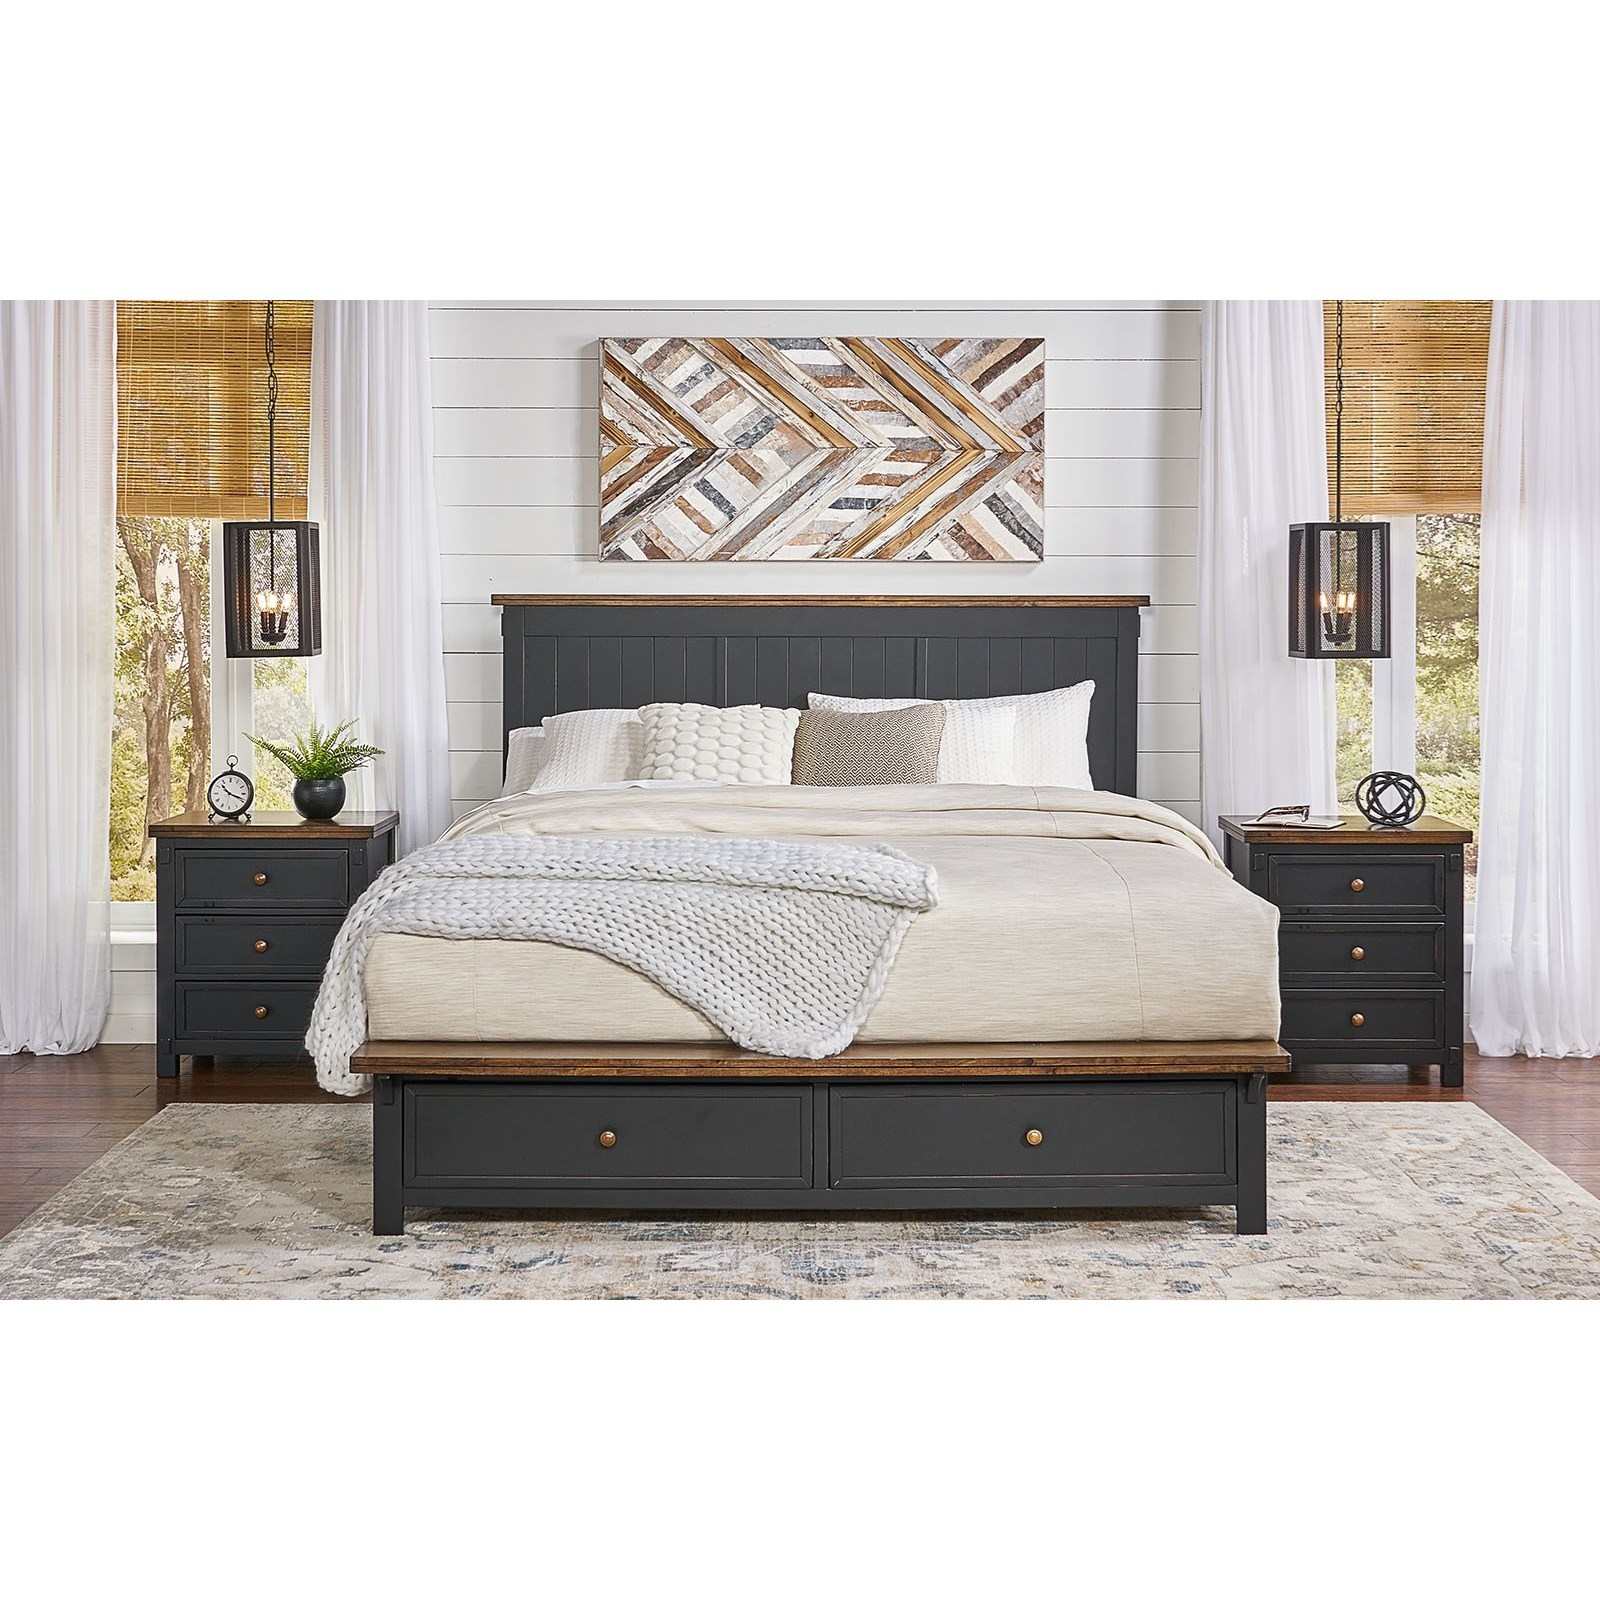 Stormy Ridge King Storage Bed  by A-A at Walker's Furniture